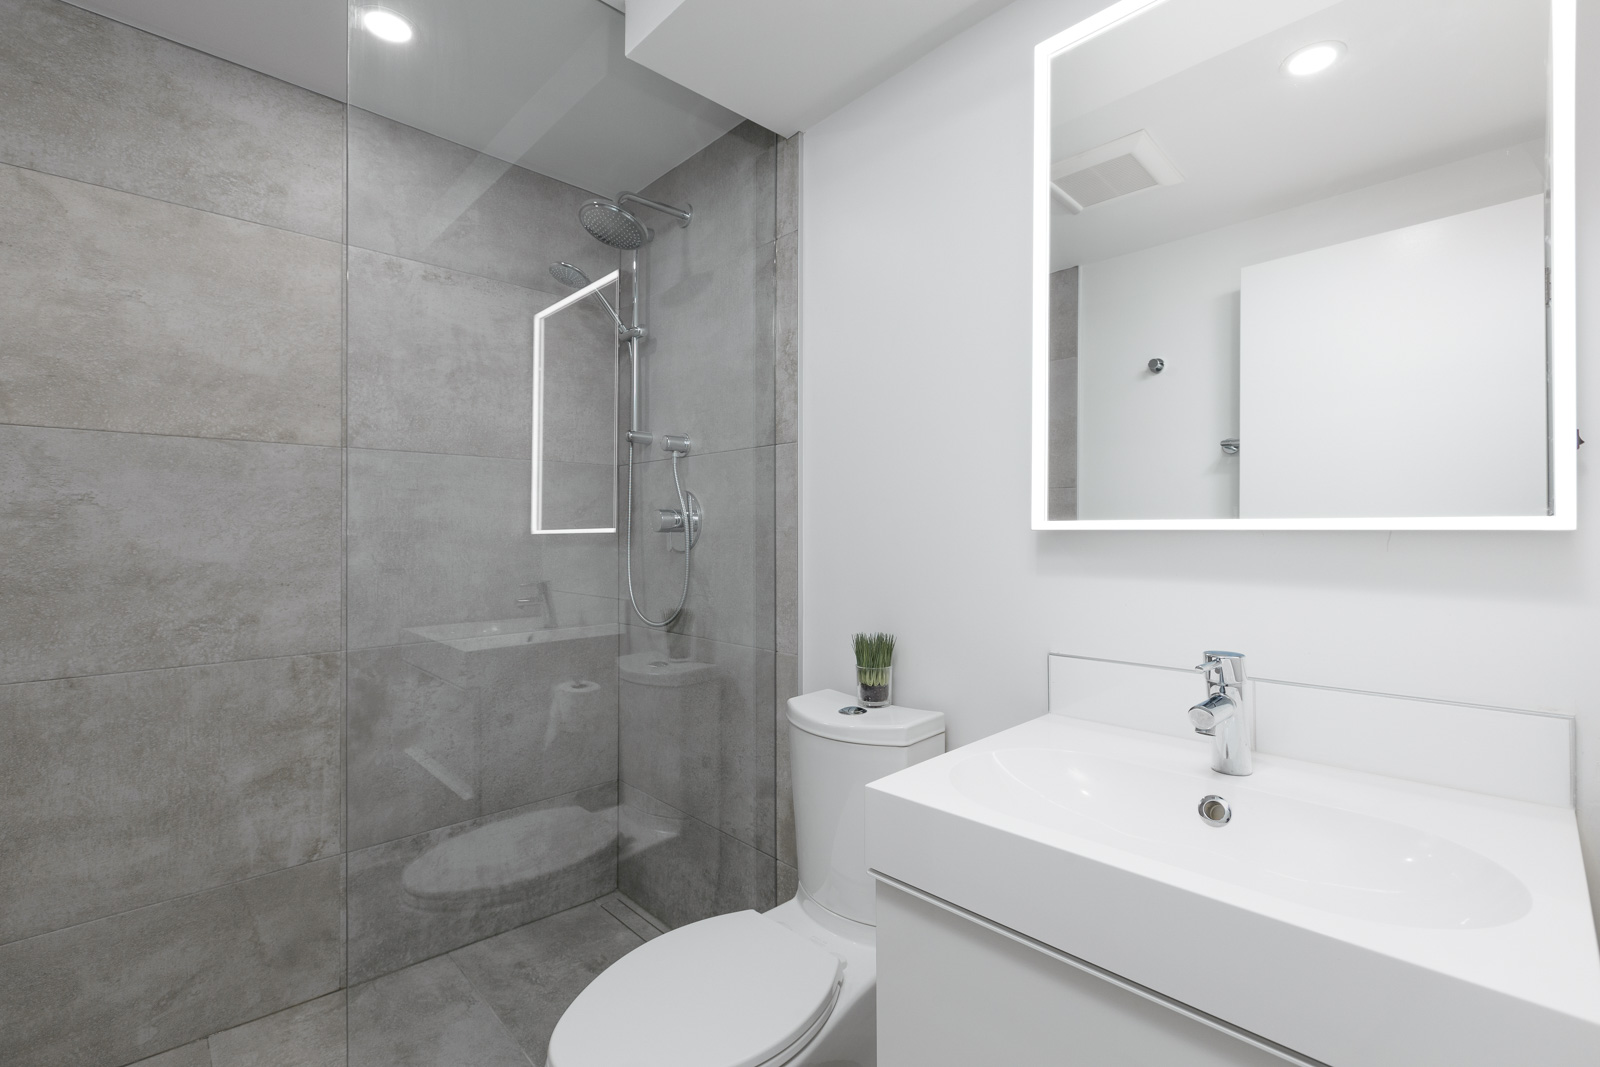 bathroom of rental condo with granite tiles in shower on left and vanity on right with vancouver property management